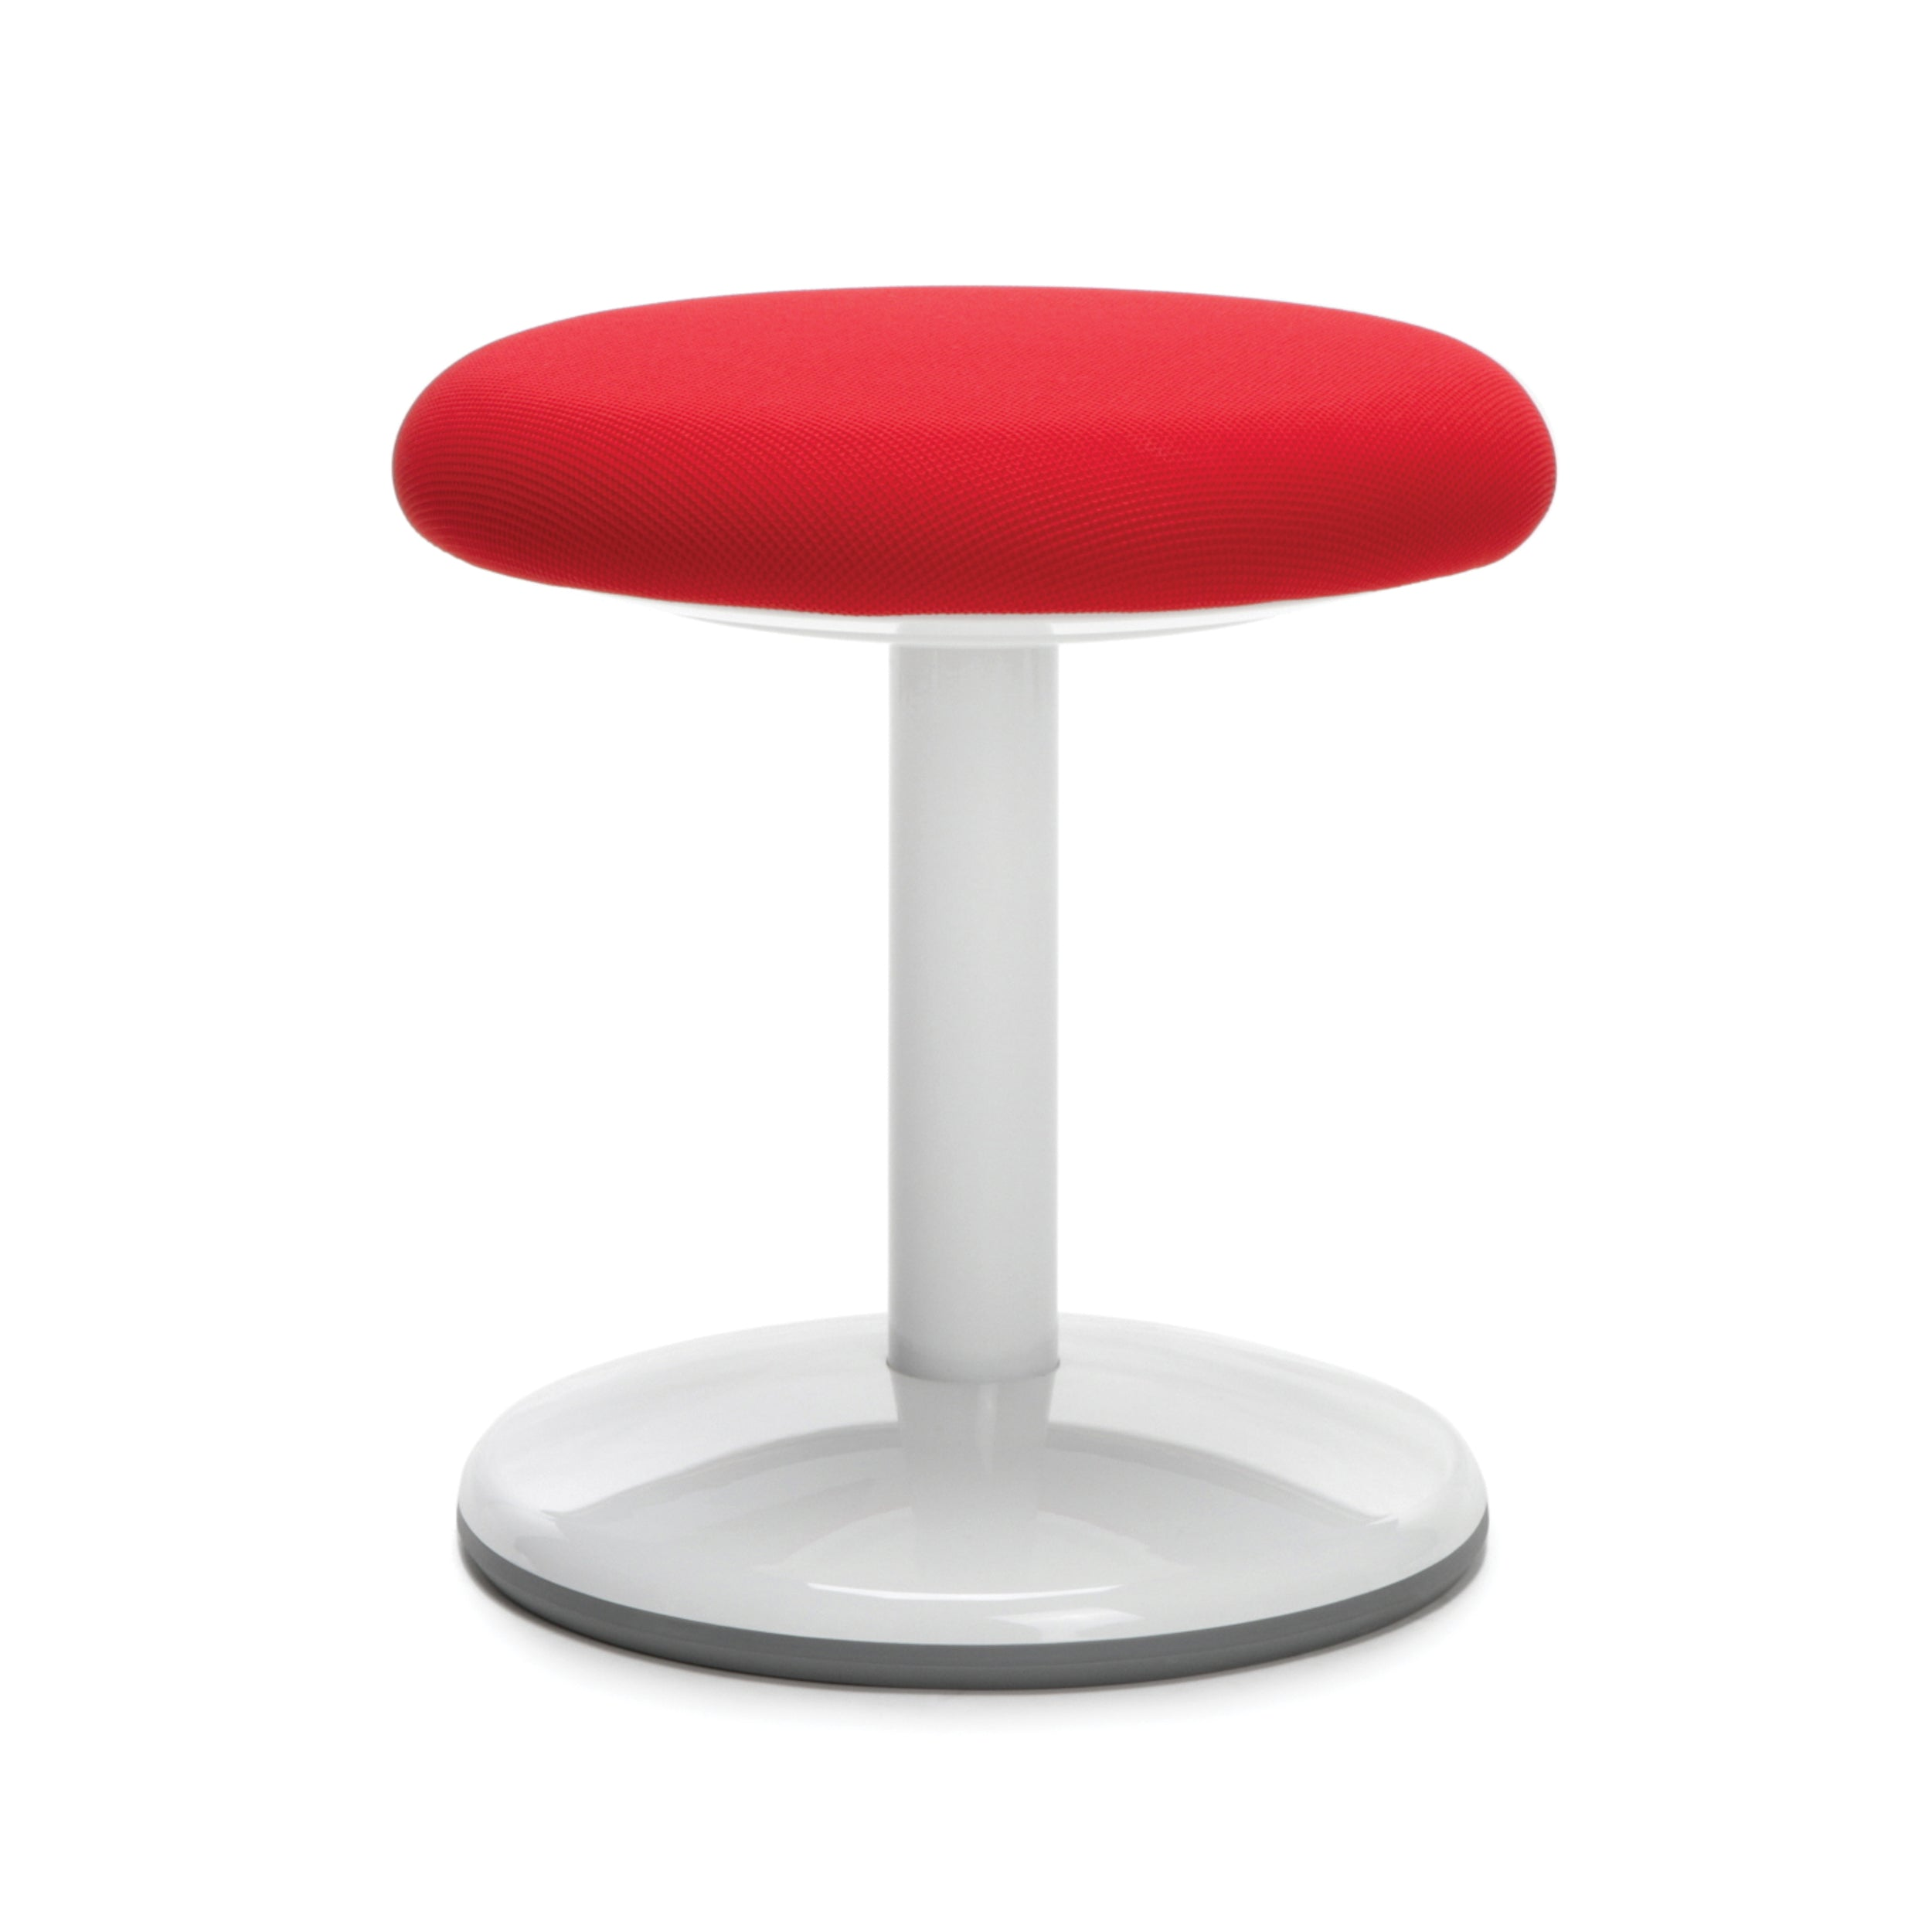 Ofminc Model 2814-STA Orbit 14 Inch High Fabric Static Stool